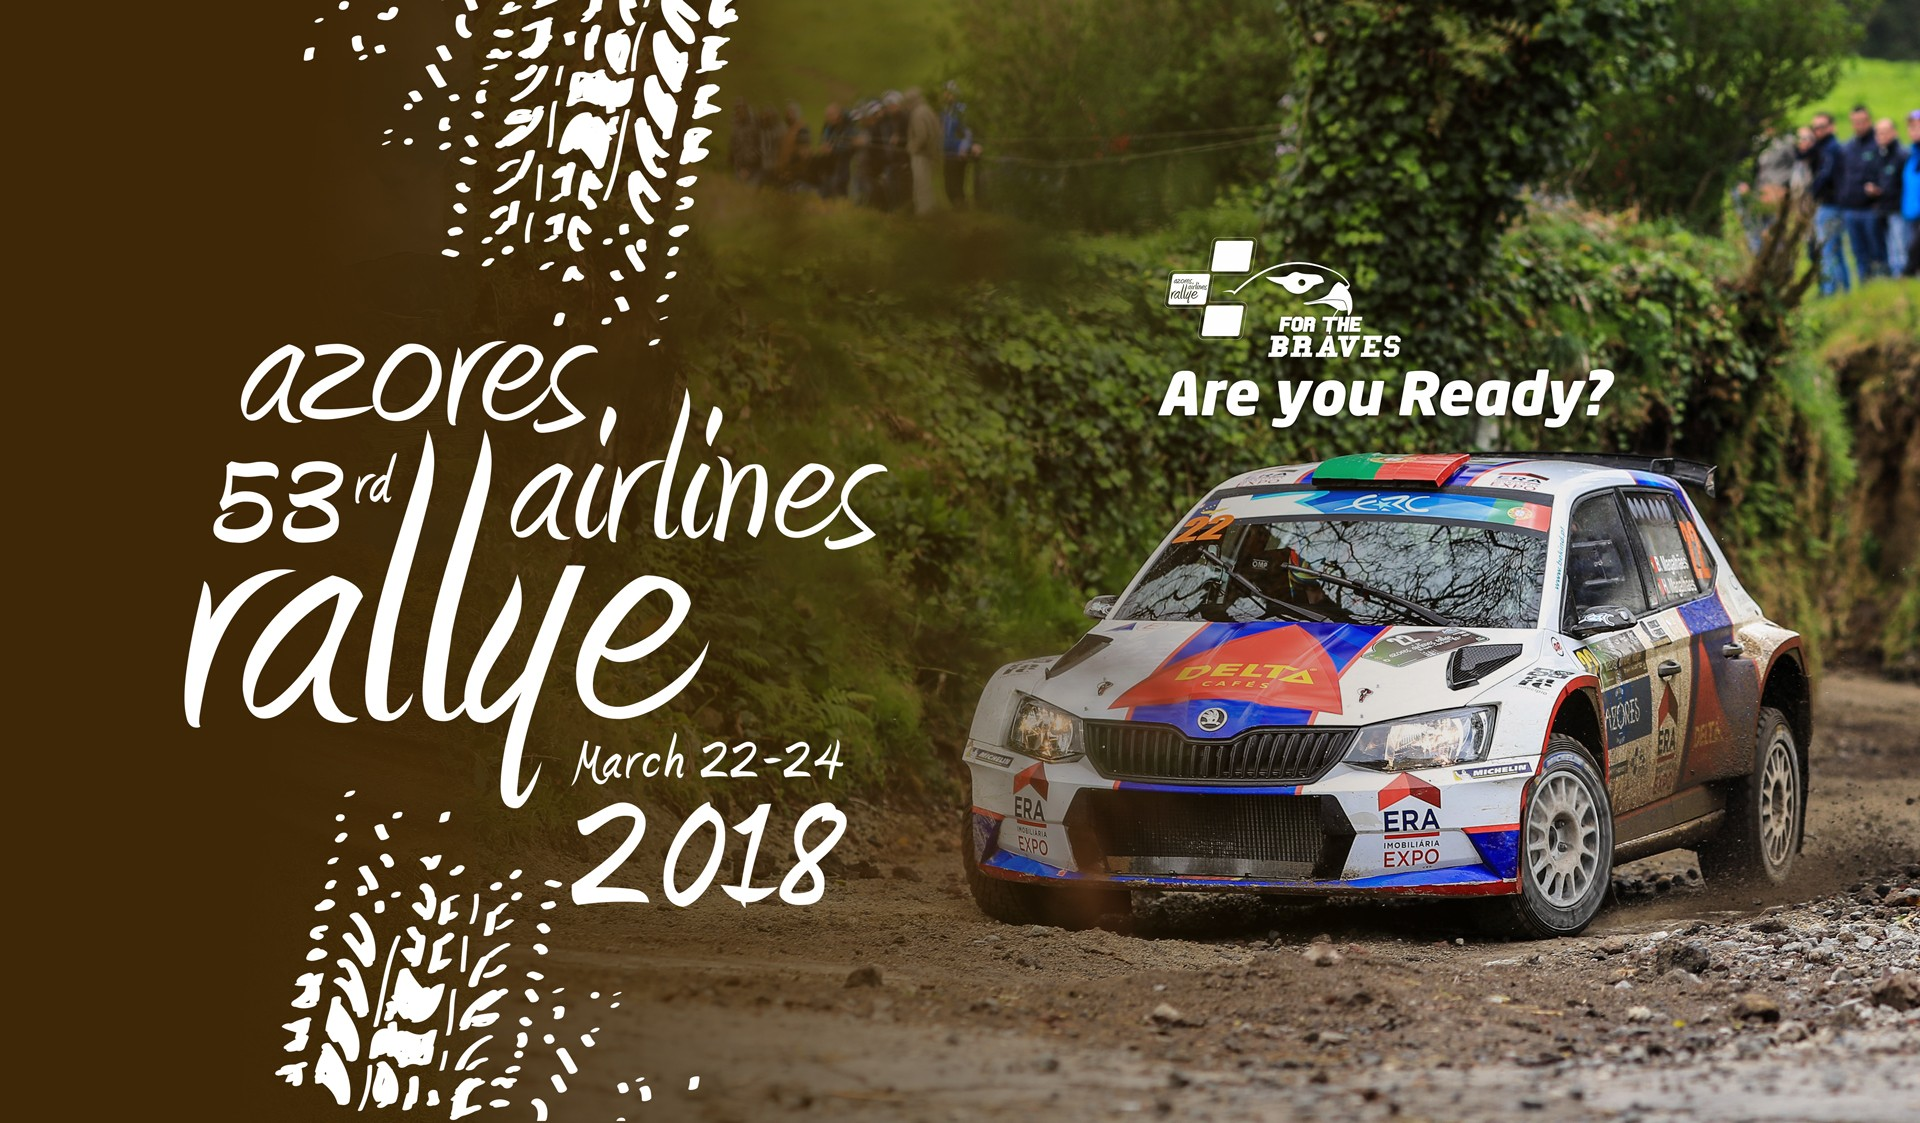 slide_1_azores_airlines_rallye